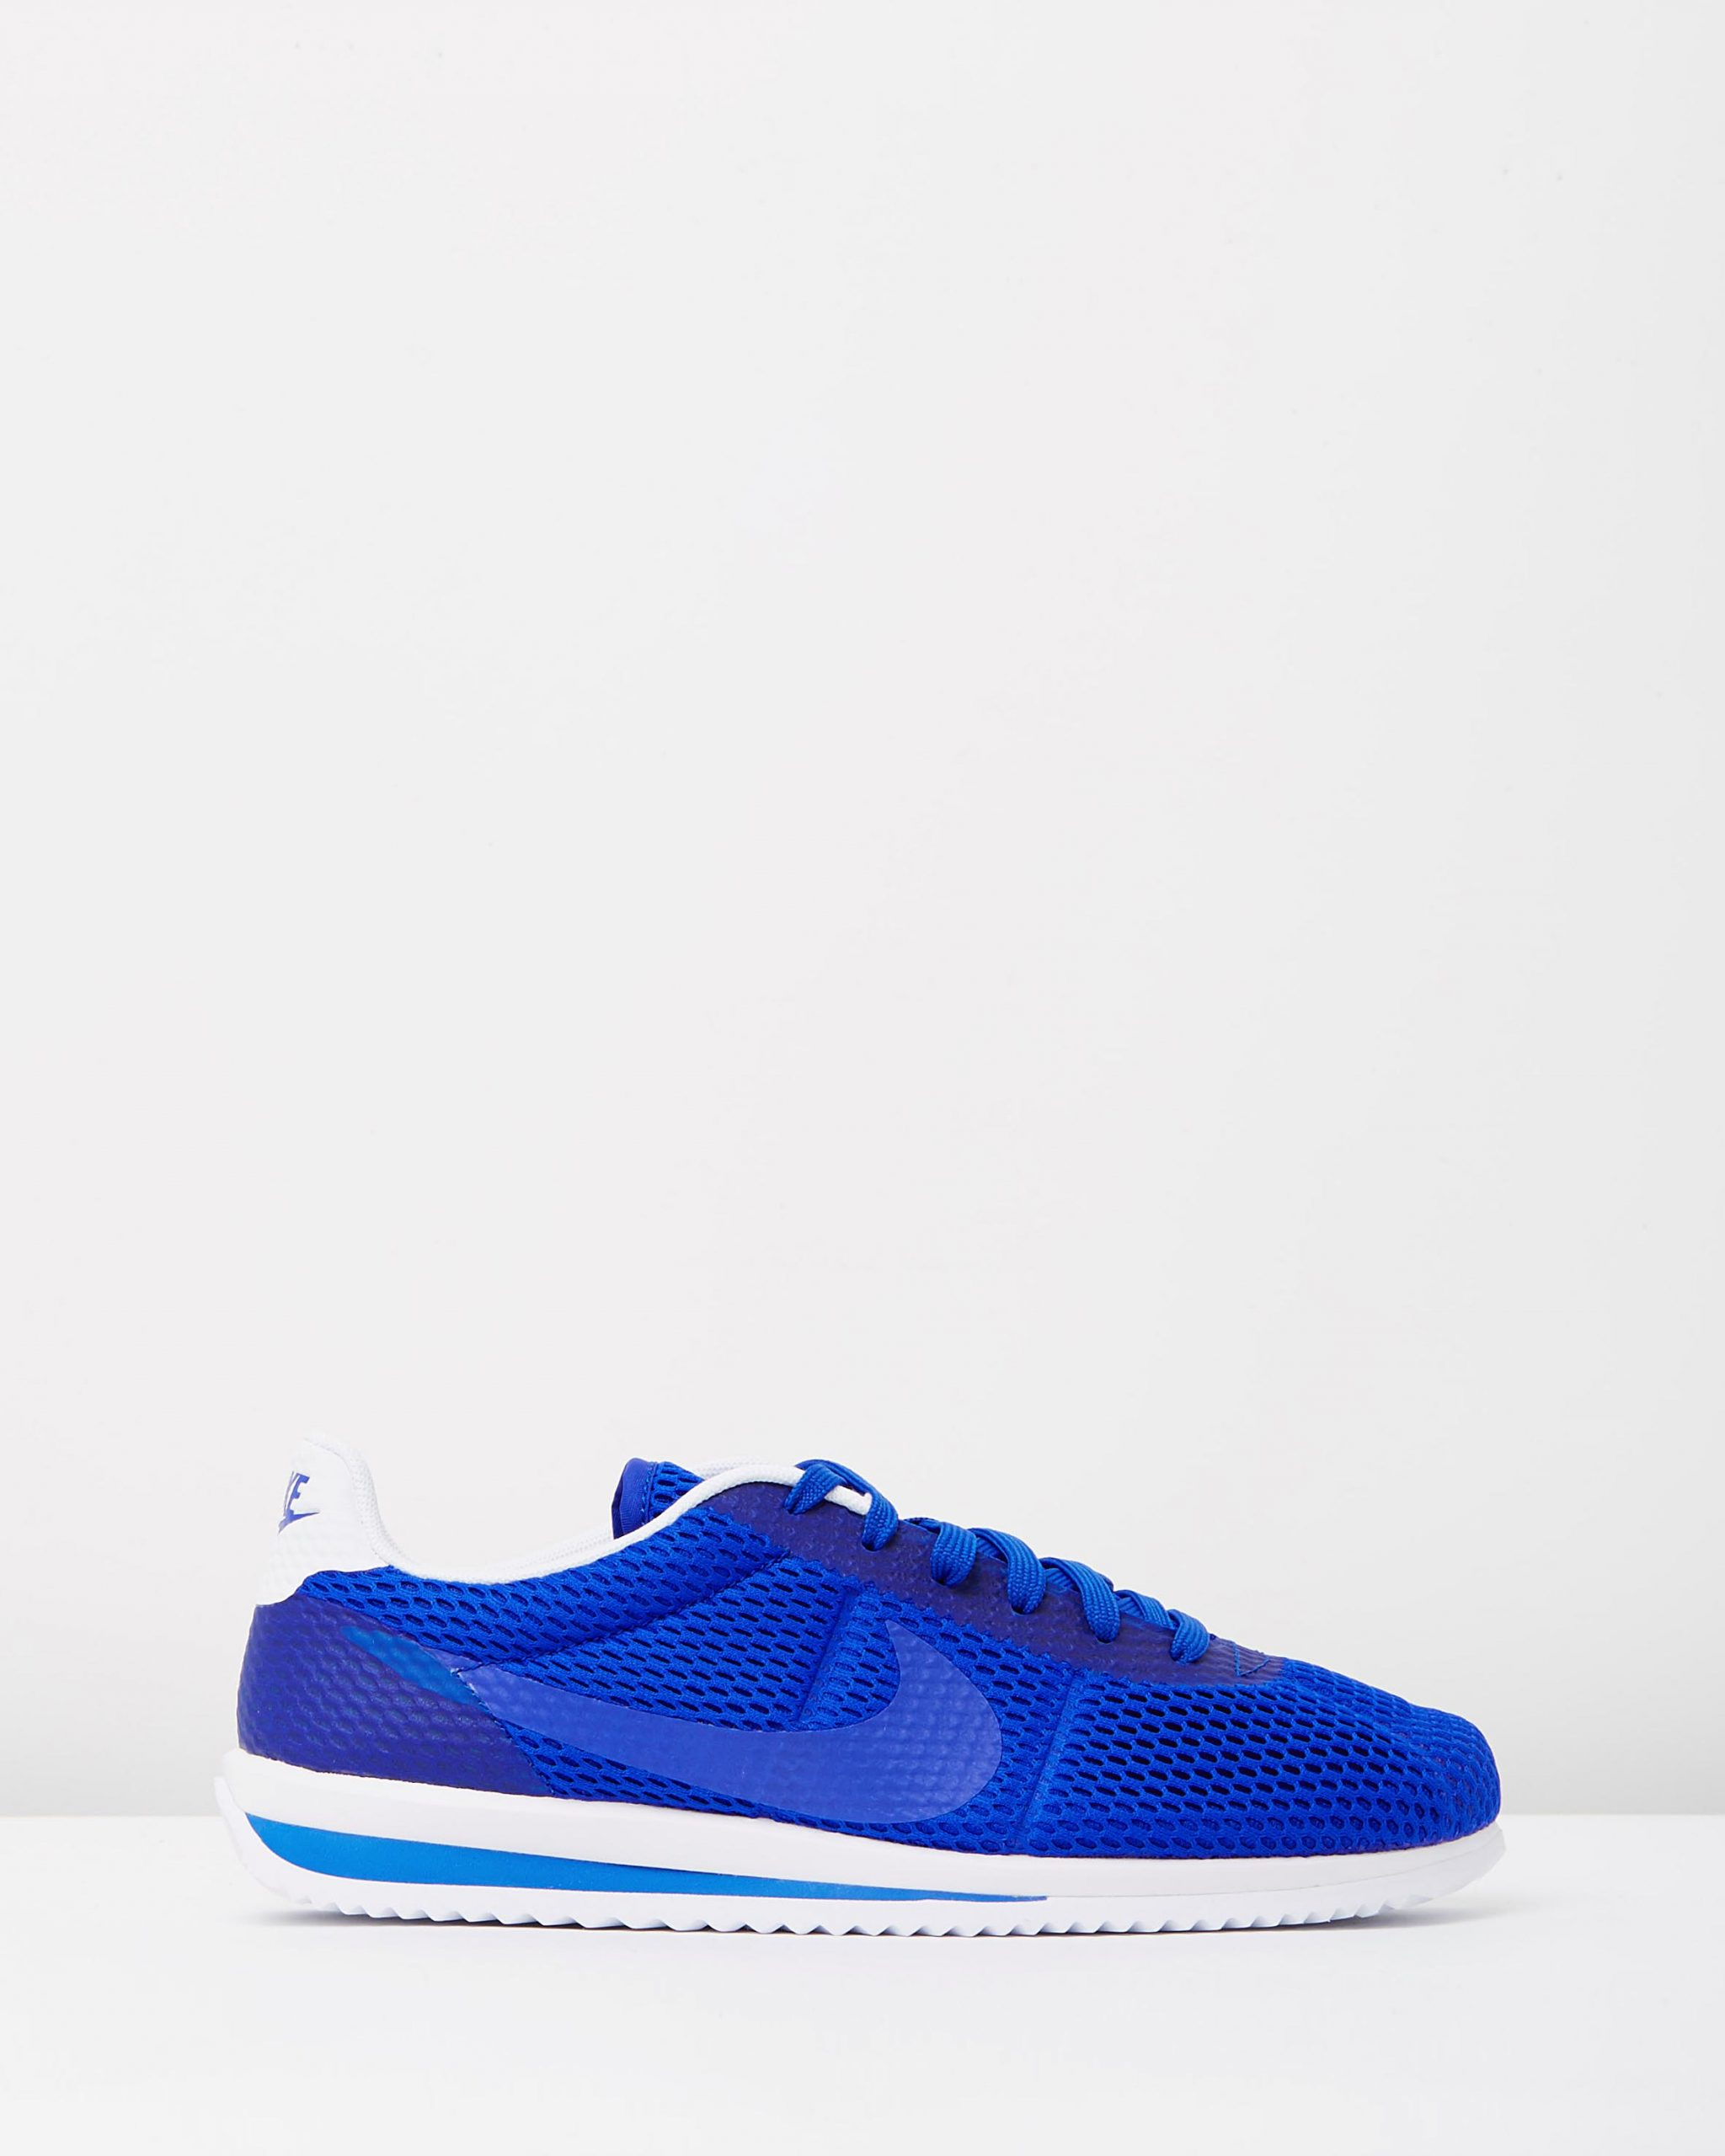 Nike Cortez Ultra BR Total Blue & White